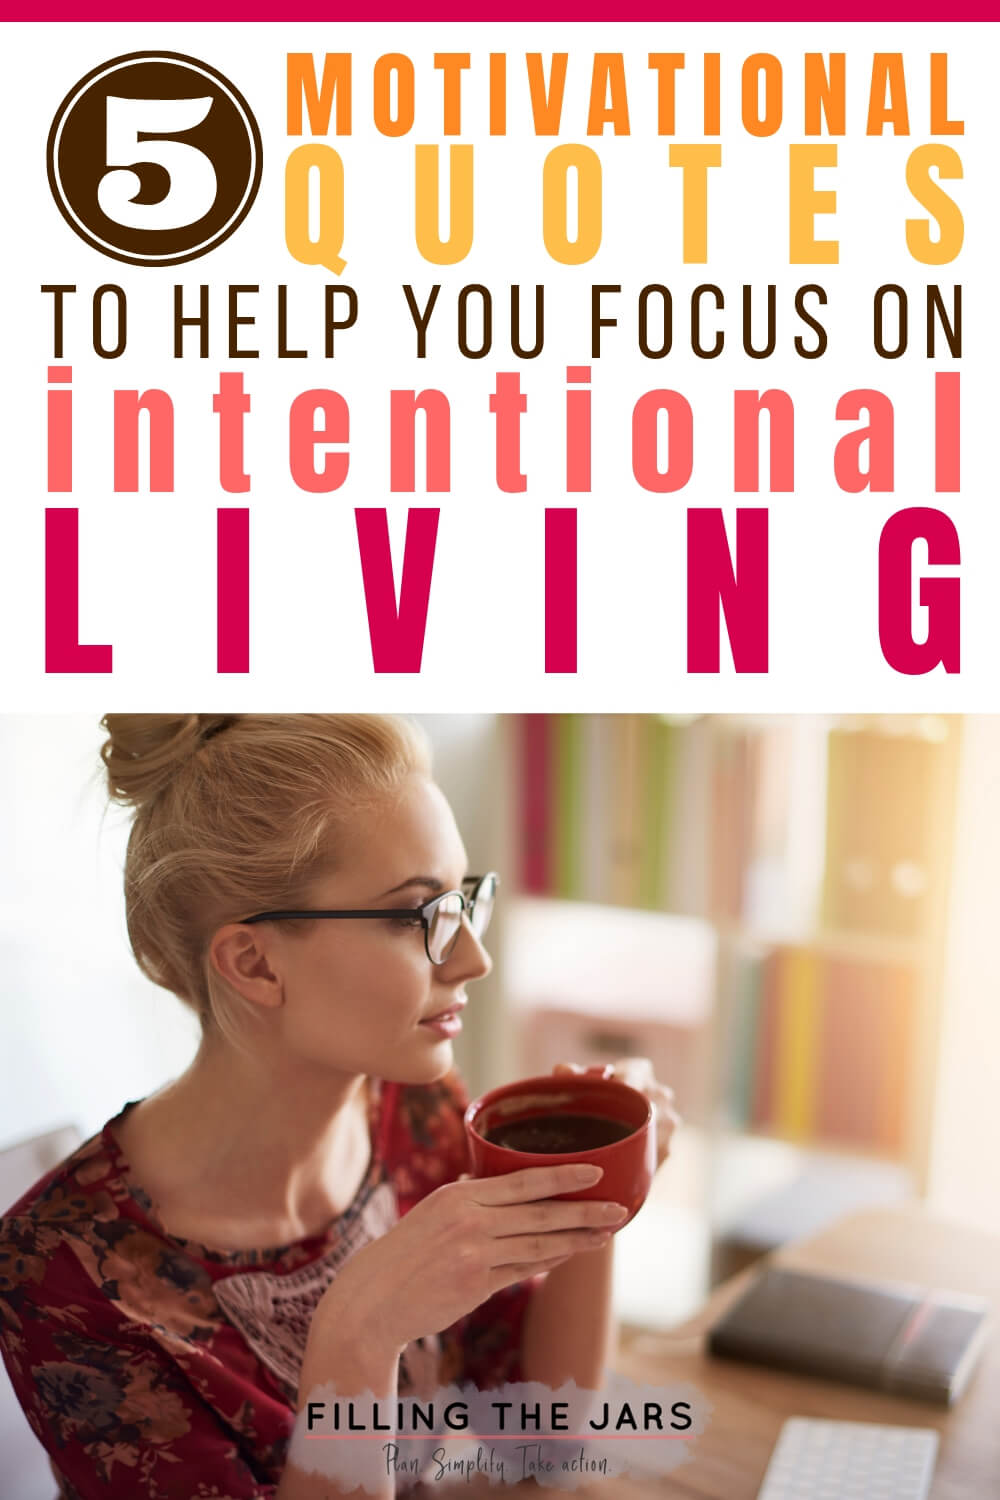 motivational quotes text above image of blonde woman wearing glasses sitting at table drinking coffee in diffused sunlight